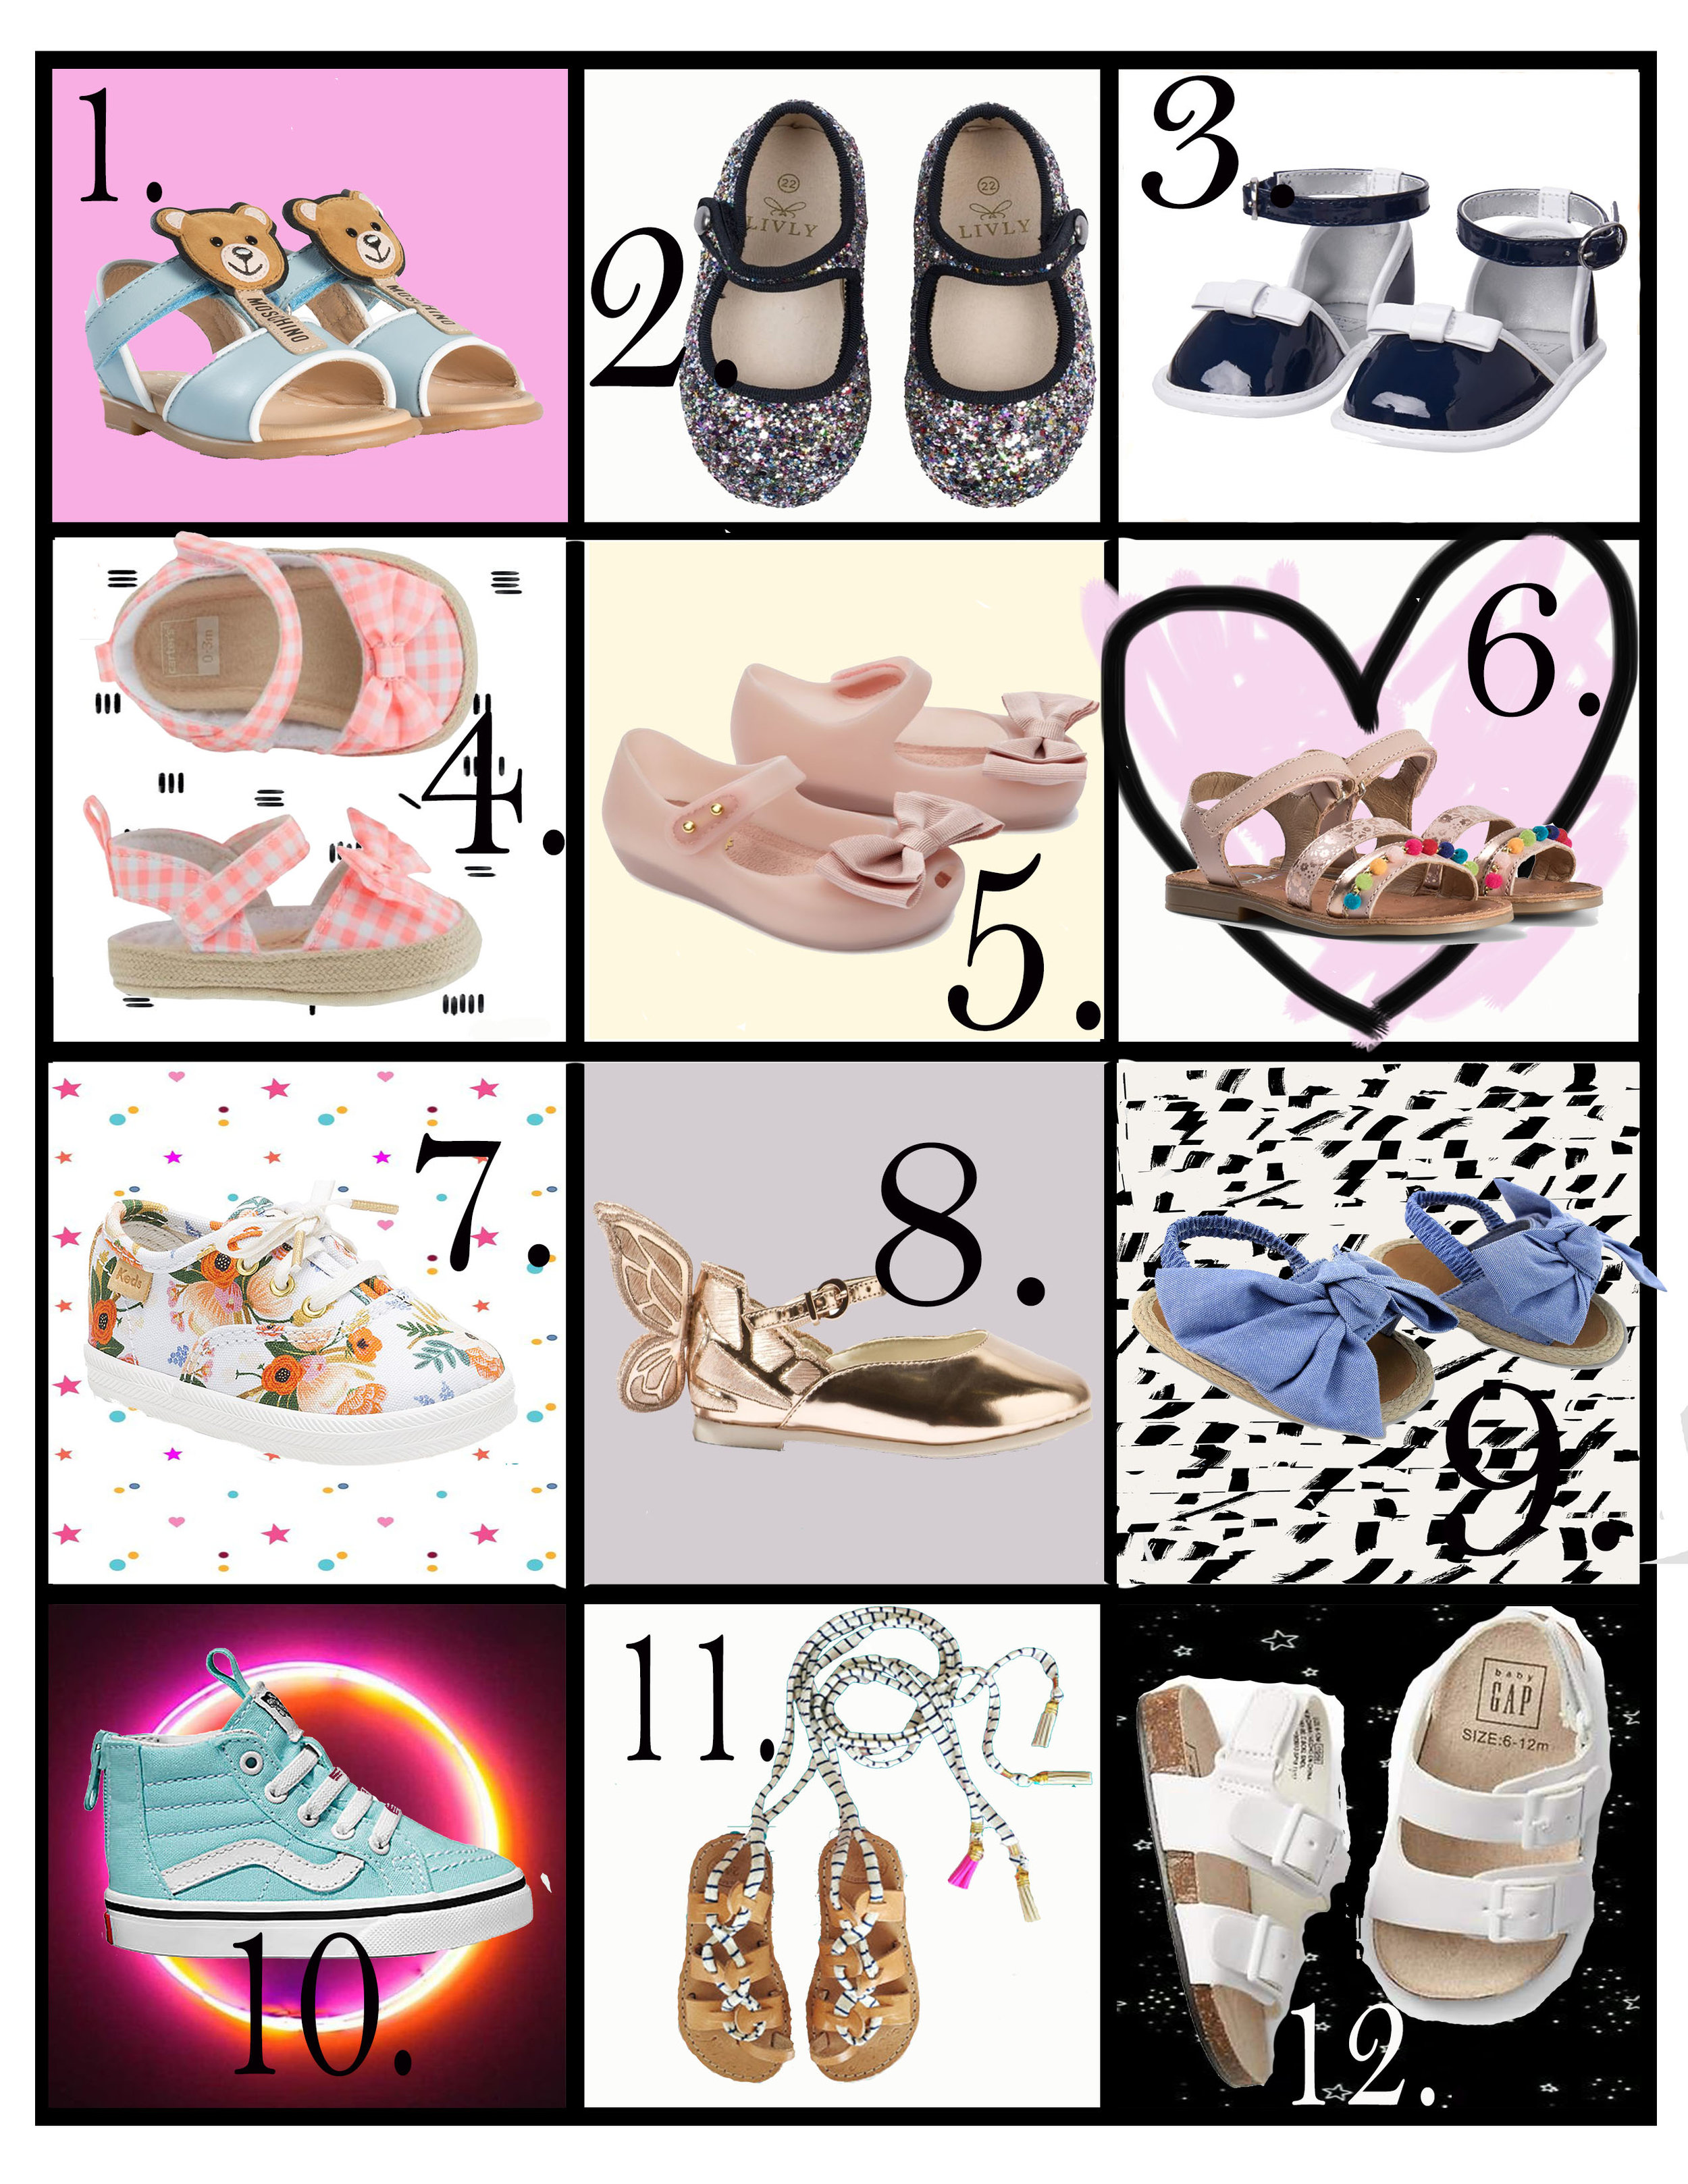 SHOES SHOES SHOES - There are about a million options when it comes to buying amazing shoes for kids. But something about summer shoes is just as much for your mini as it is for you! No more thick socks, cute baby toes are free and there's wayyyy more color! We've rounded up our favorites from high to low, from wild to sweet and everything in between.Time for a mini pedicure!